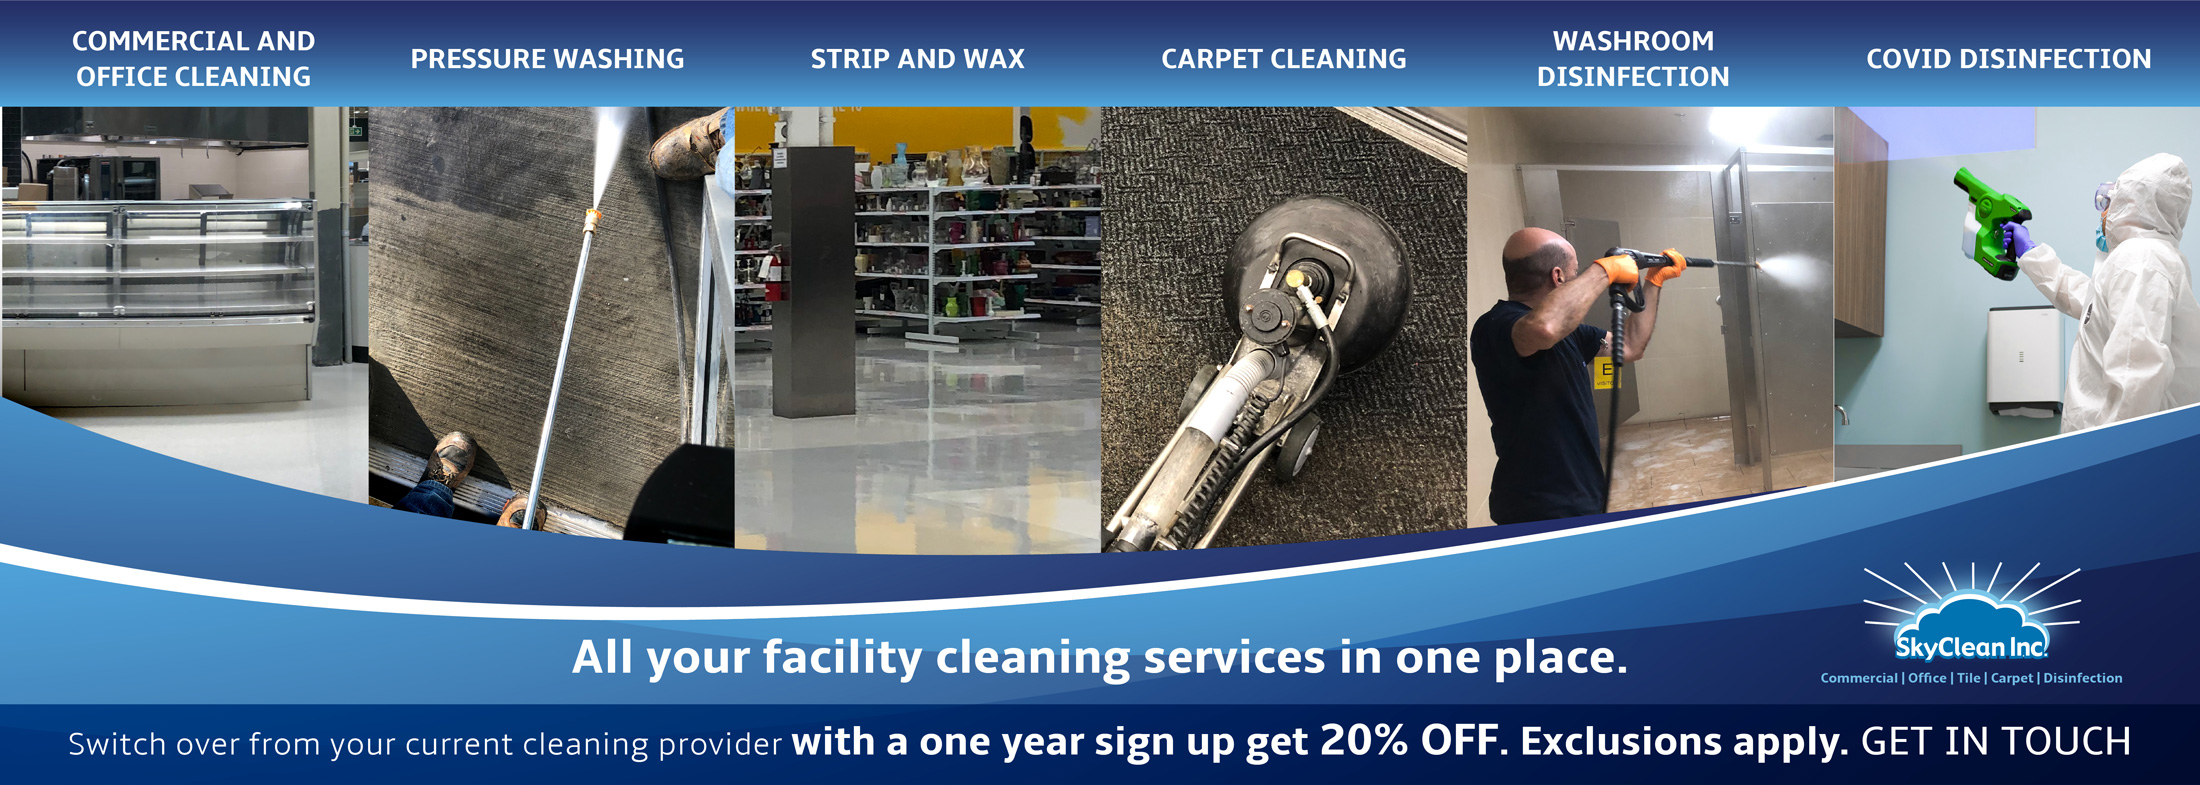 Janitorial Services by SkyClean Inc. - Cleaning Company London ON